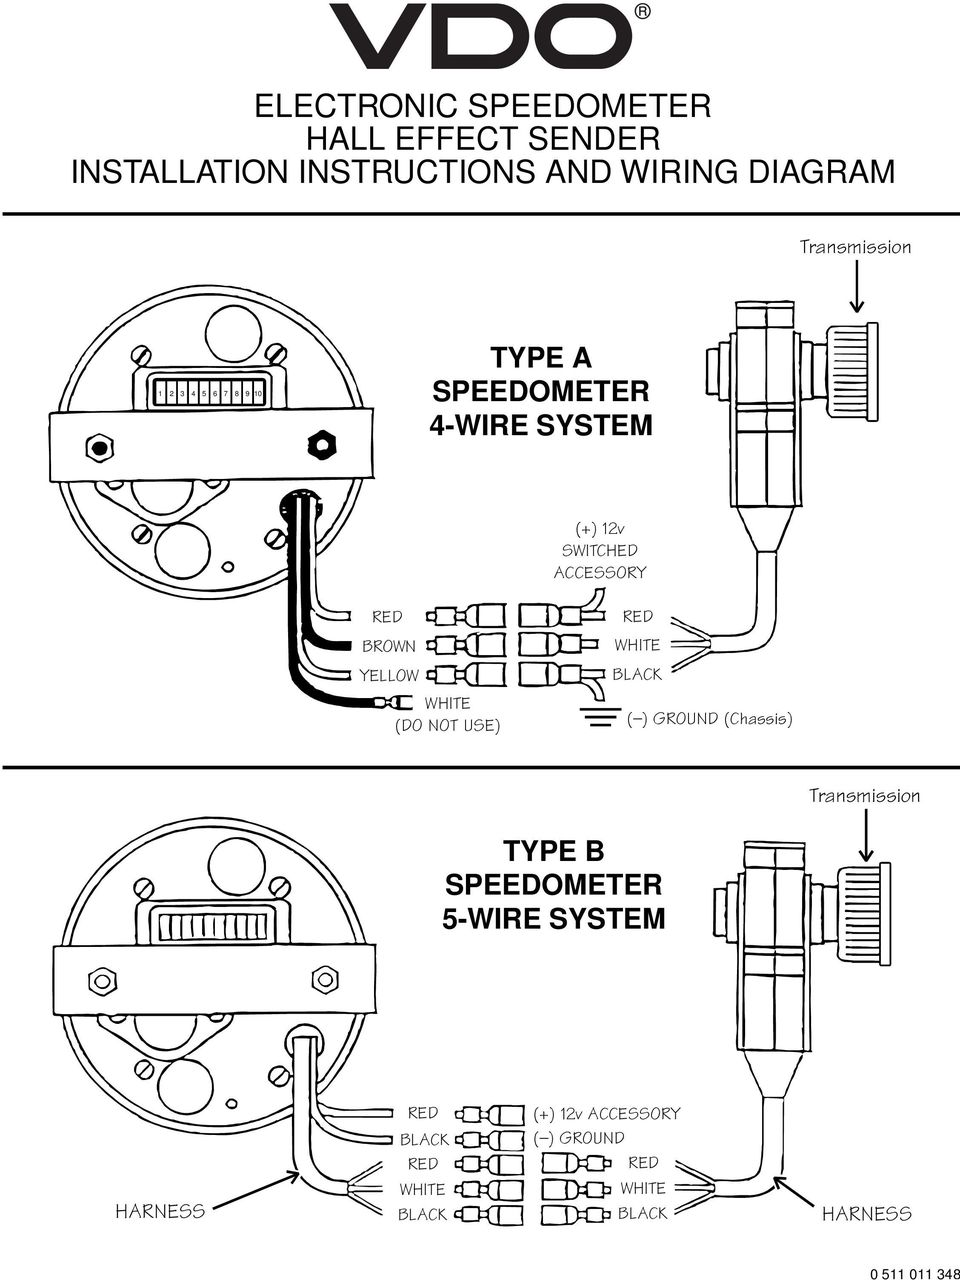 vdo kitas wiring diagram vdo electronic speedometer hall effect sender installation ... #10